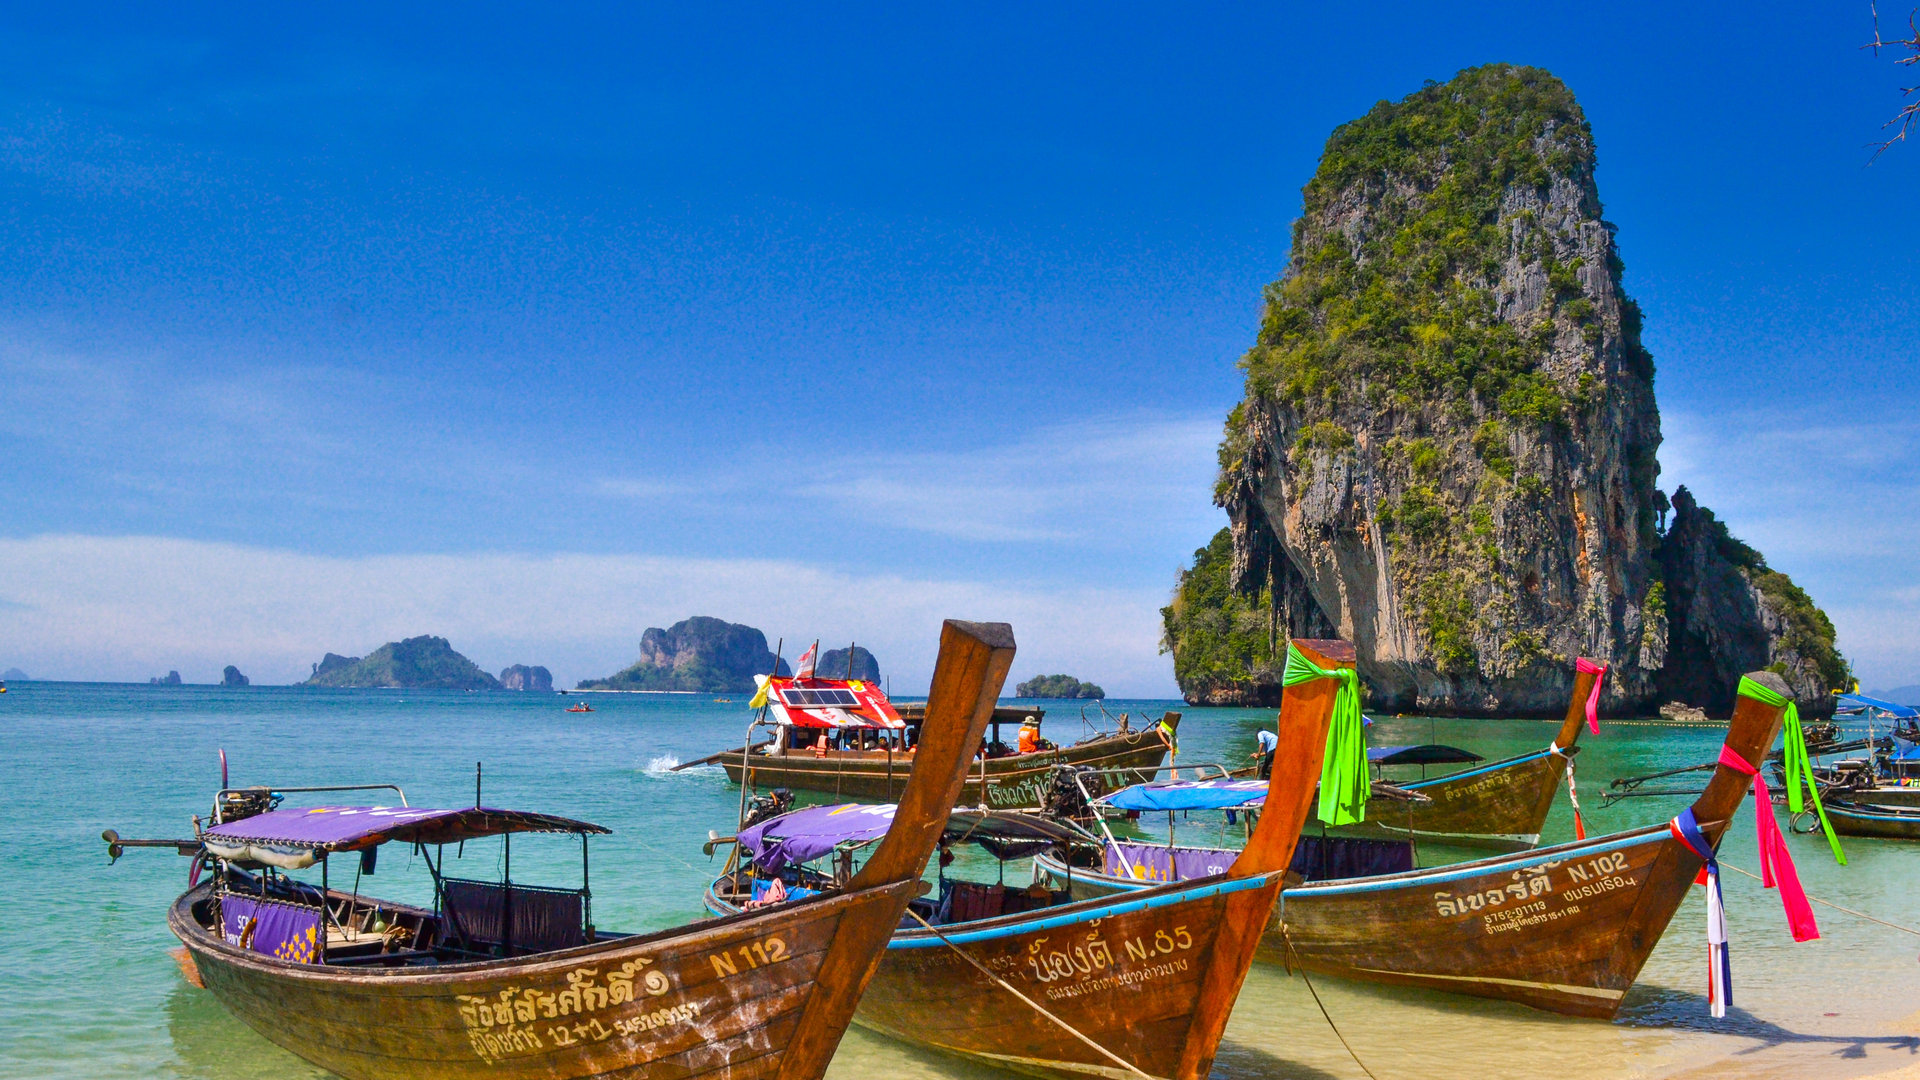 A view in Thailand